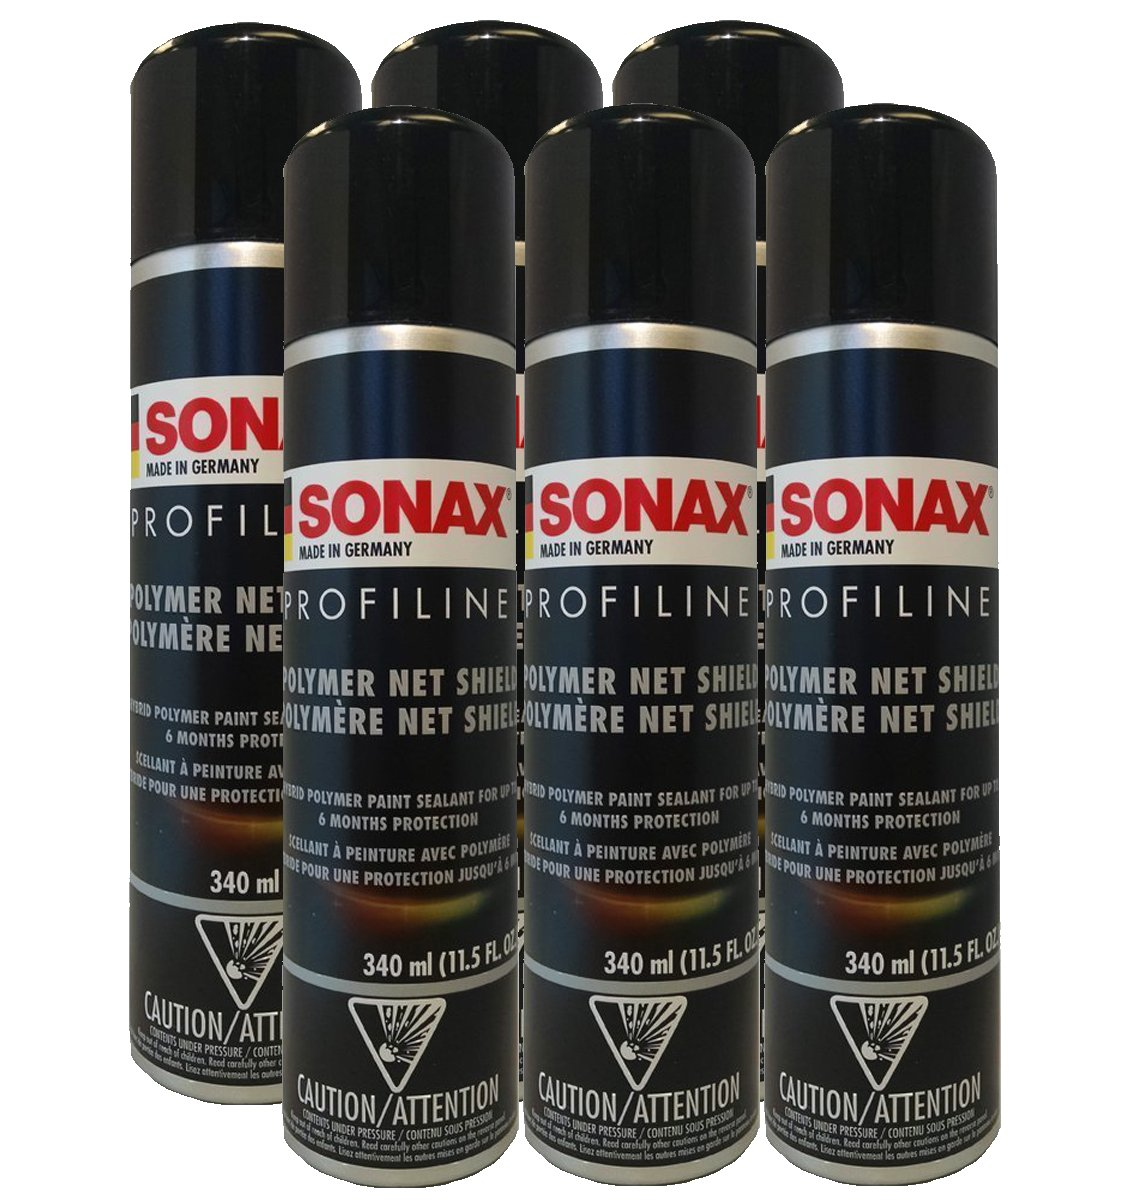 Sonax Polymer Net Shield - 11.5 fl. oz. (6 Pack)